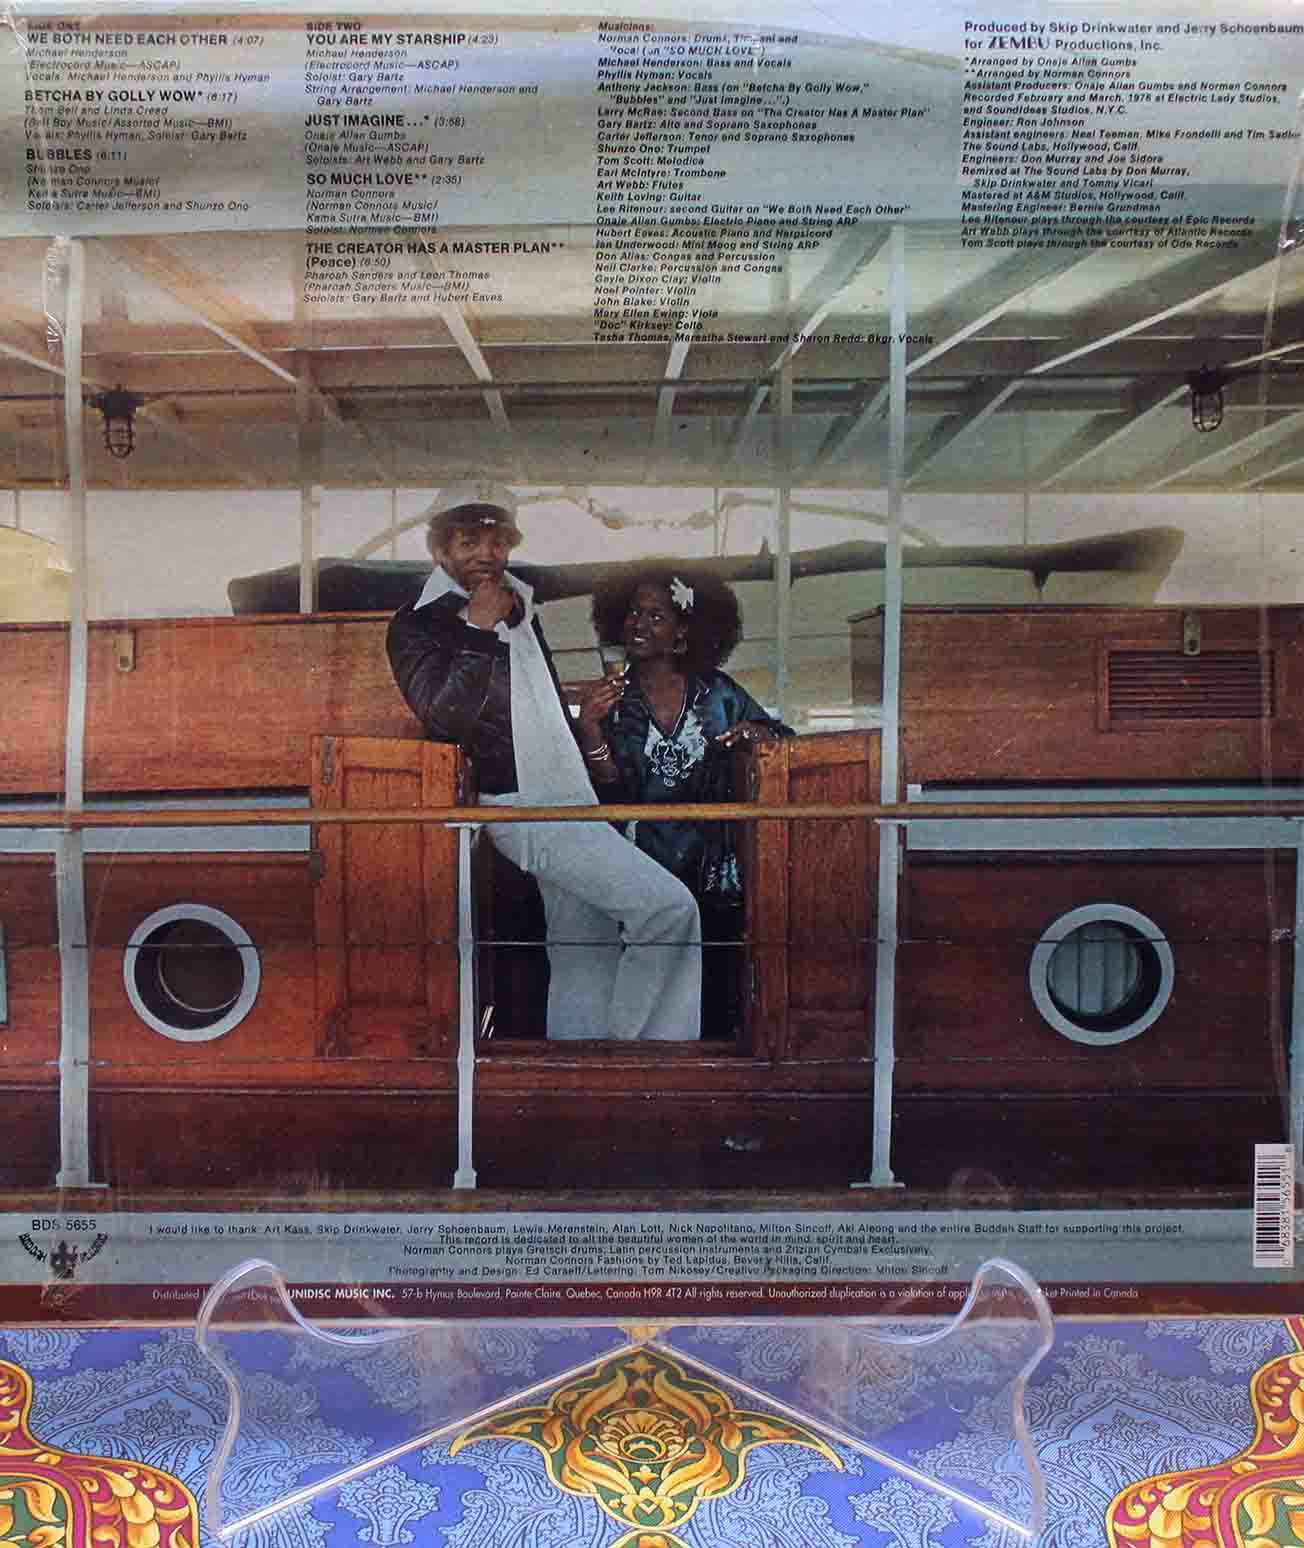 Norman Connors You Are My Starship 02